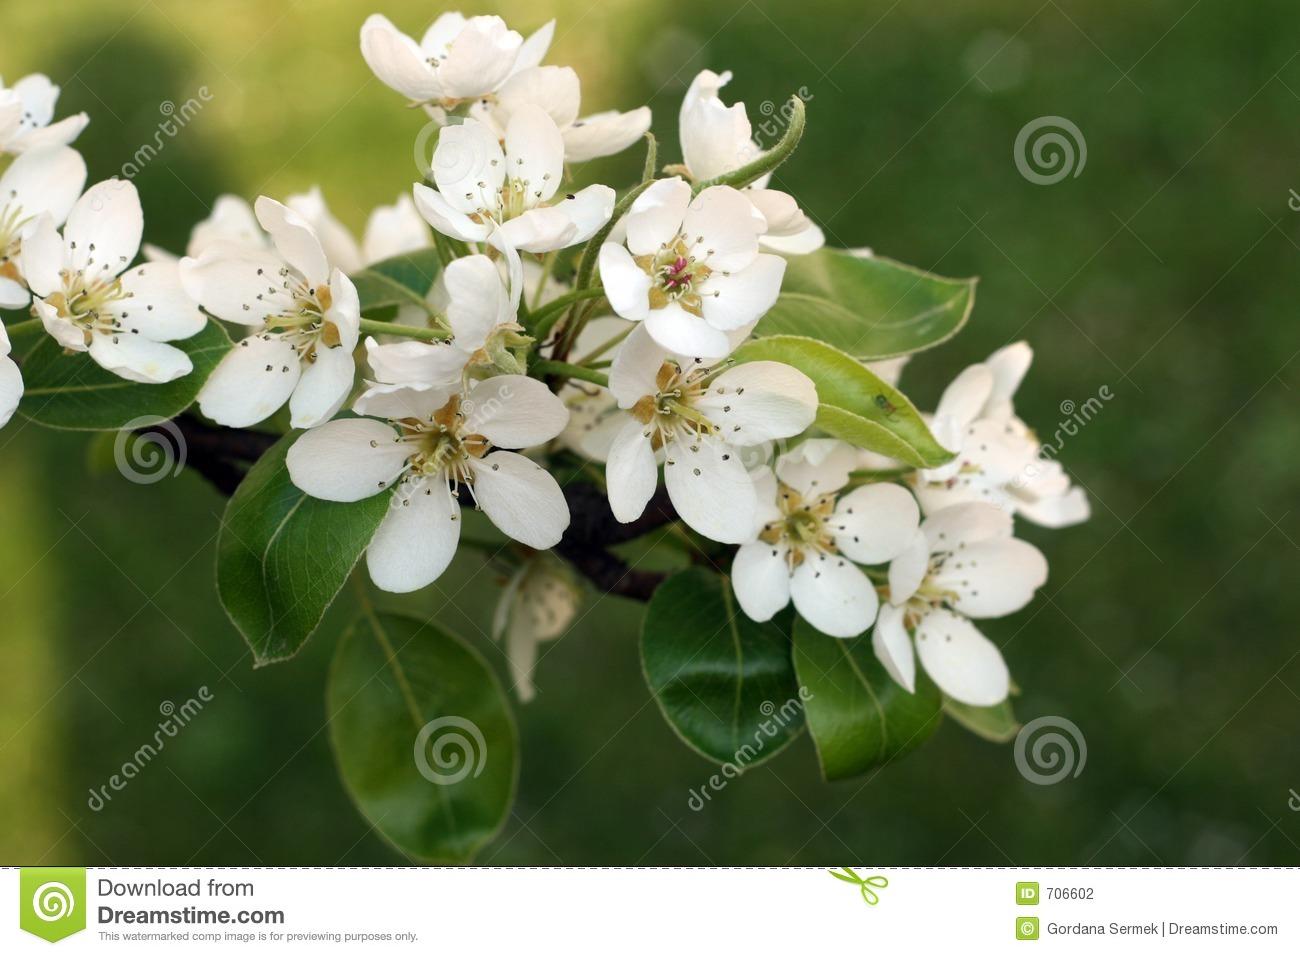 Blooming apple tree branch with green background